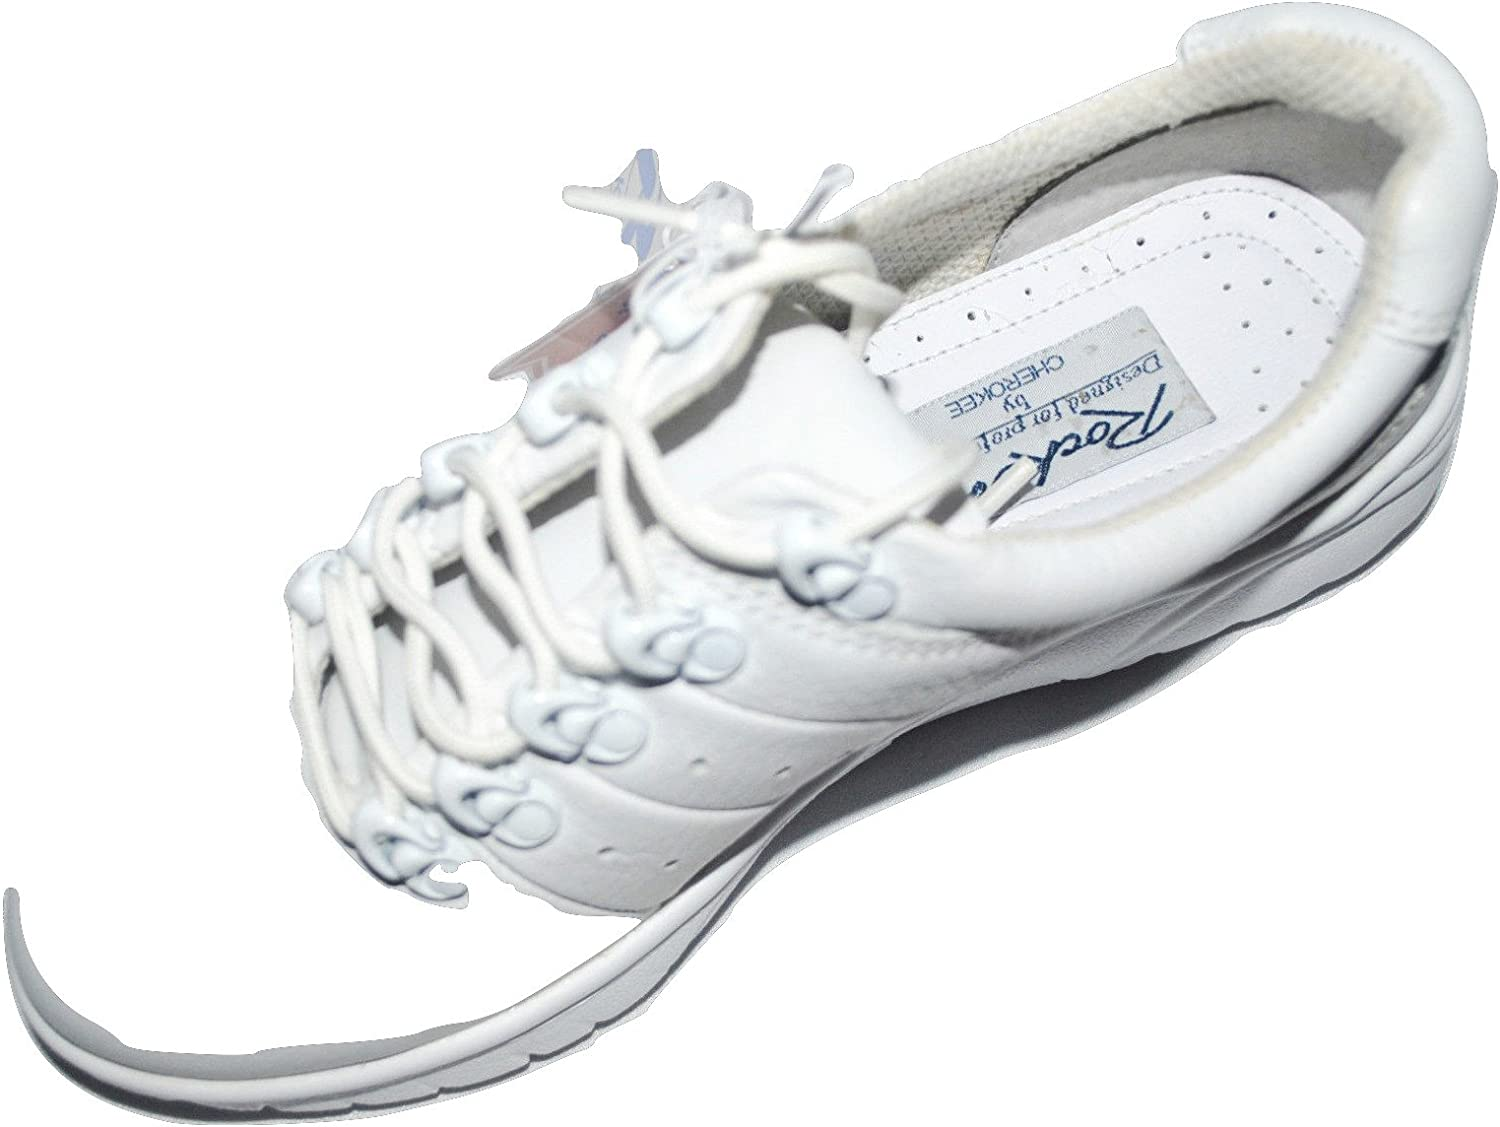 Cherokee Rockers Saffron shoes White 6M